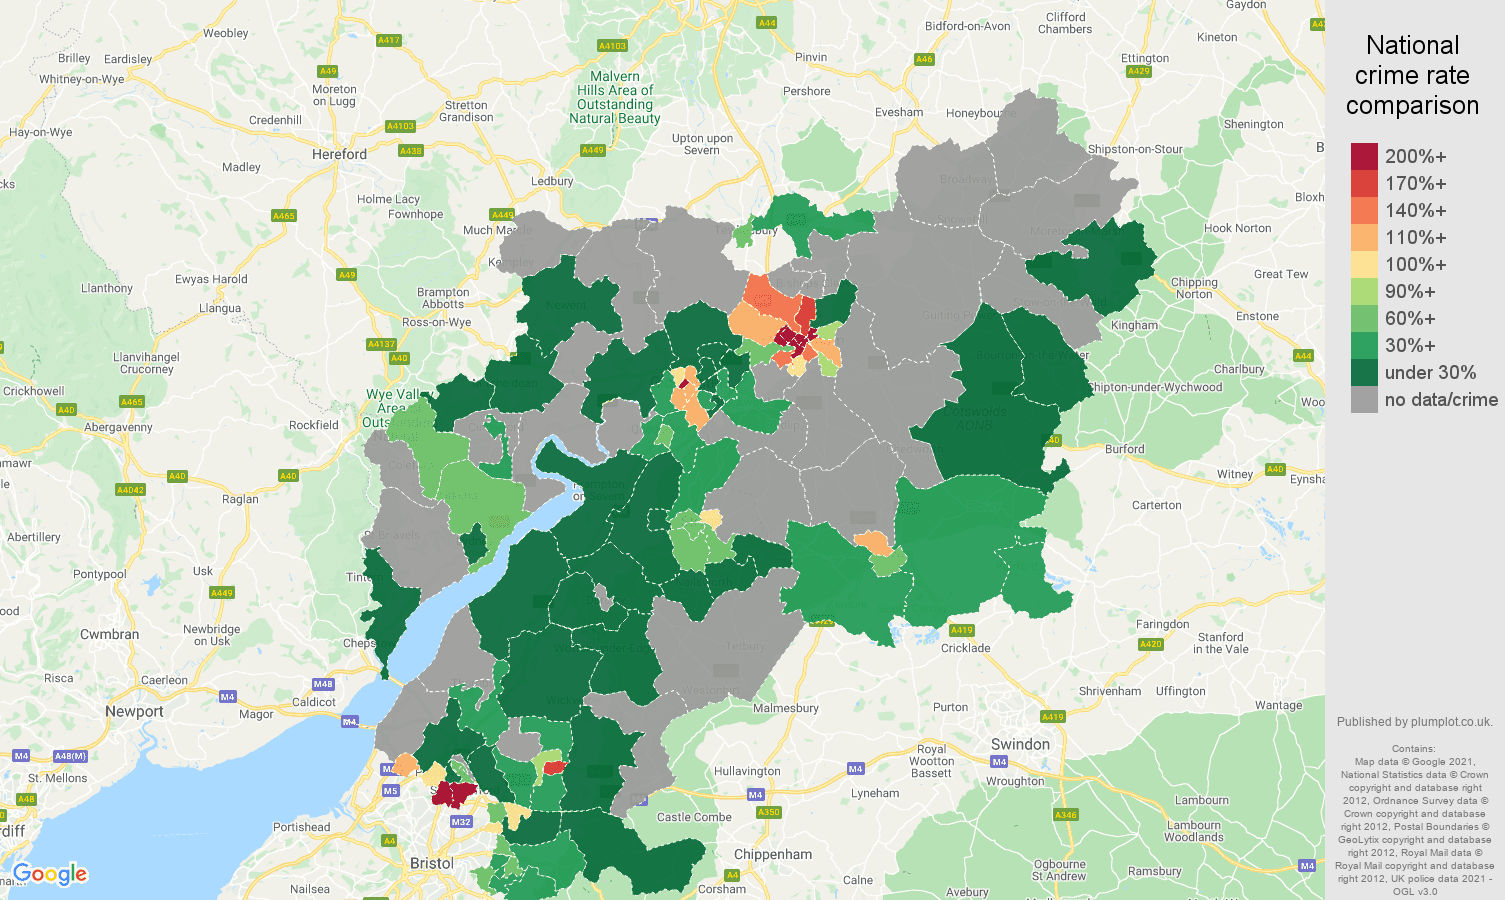 Gloucestershire bicycle theft crime rate comparison map